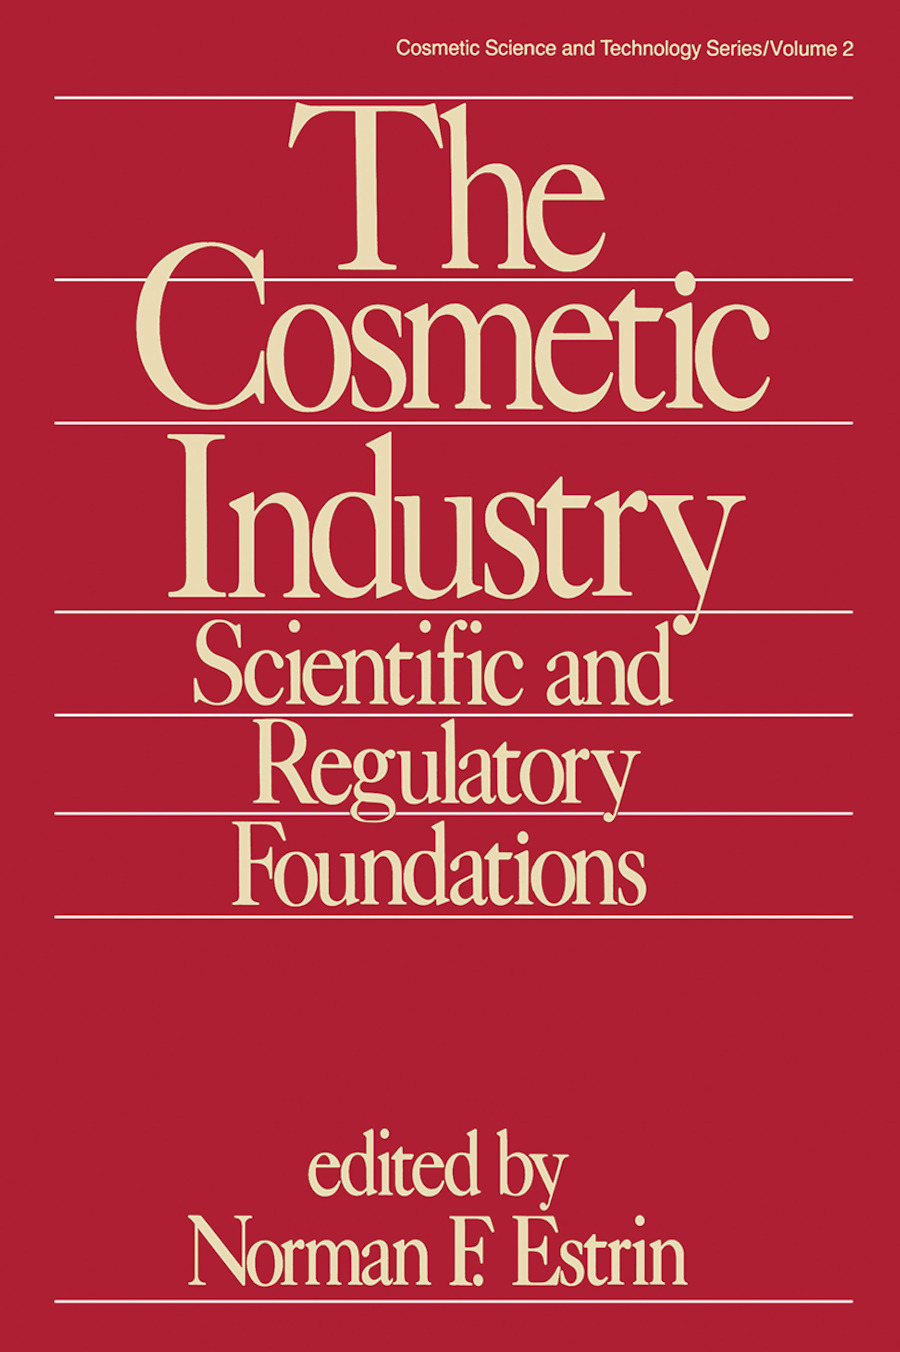 Regulation of Cosmetics in the United States: An Overview